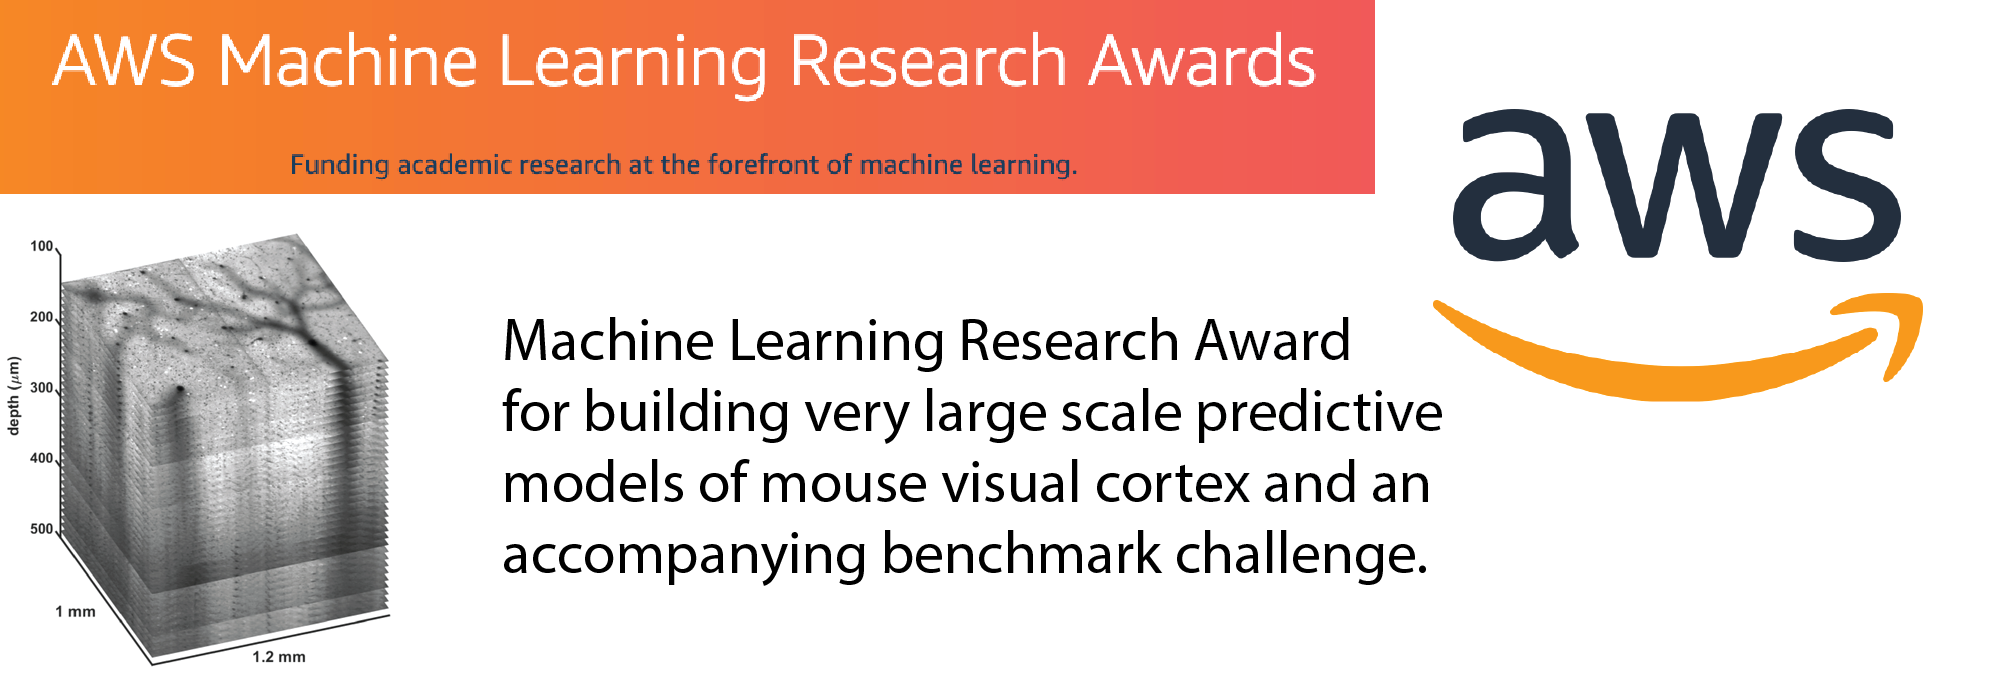 Amazon AWS Machine Learning Research Award